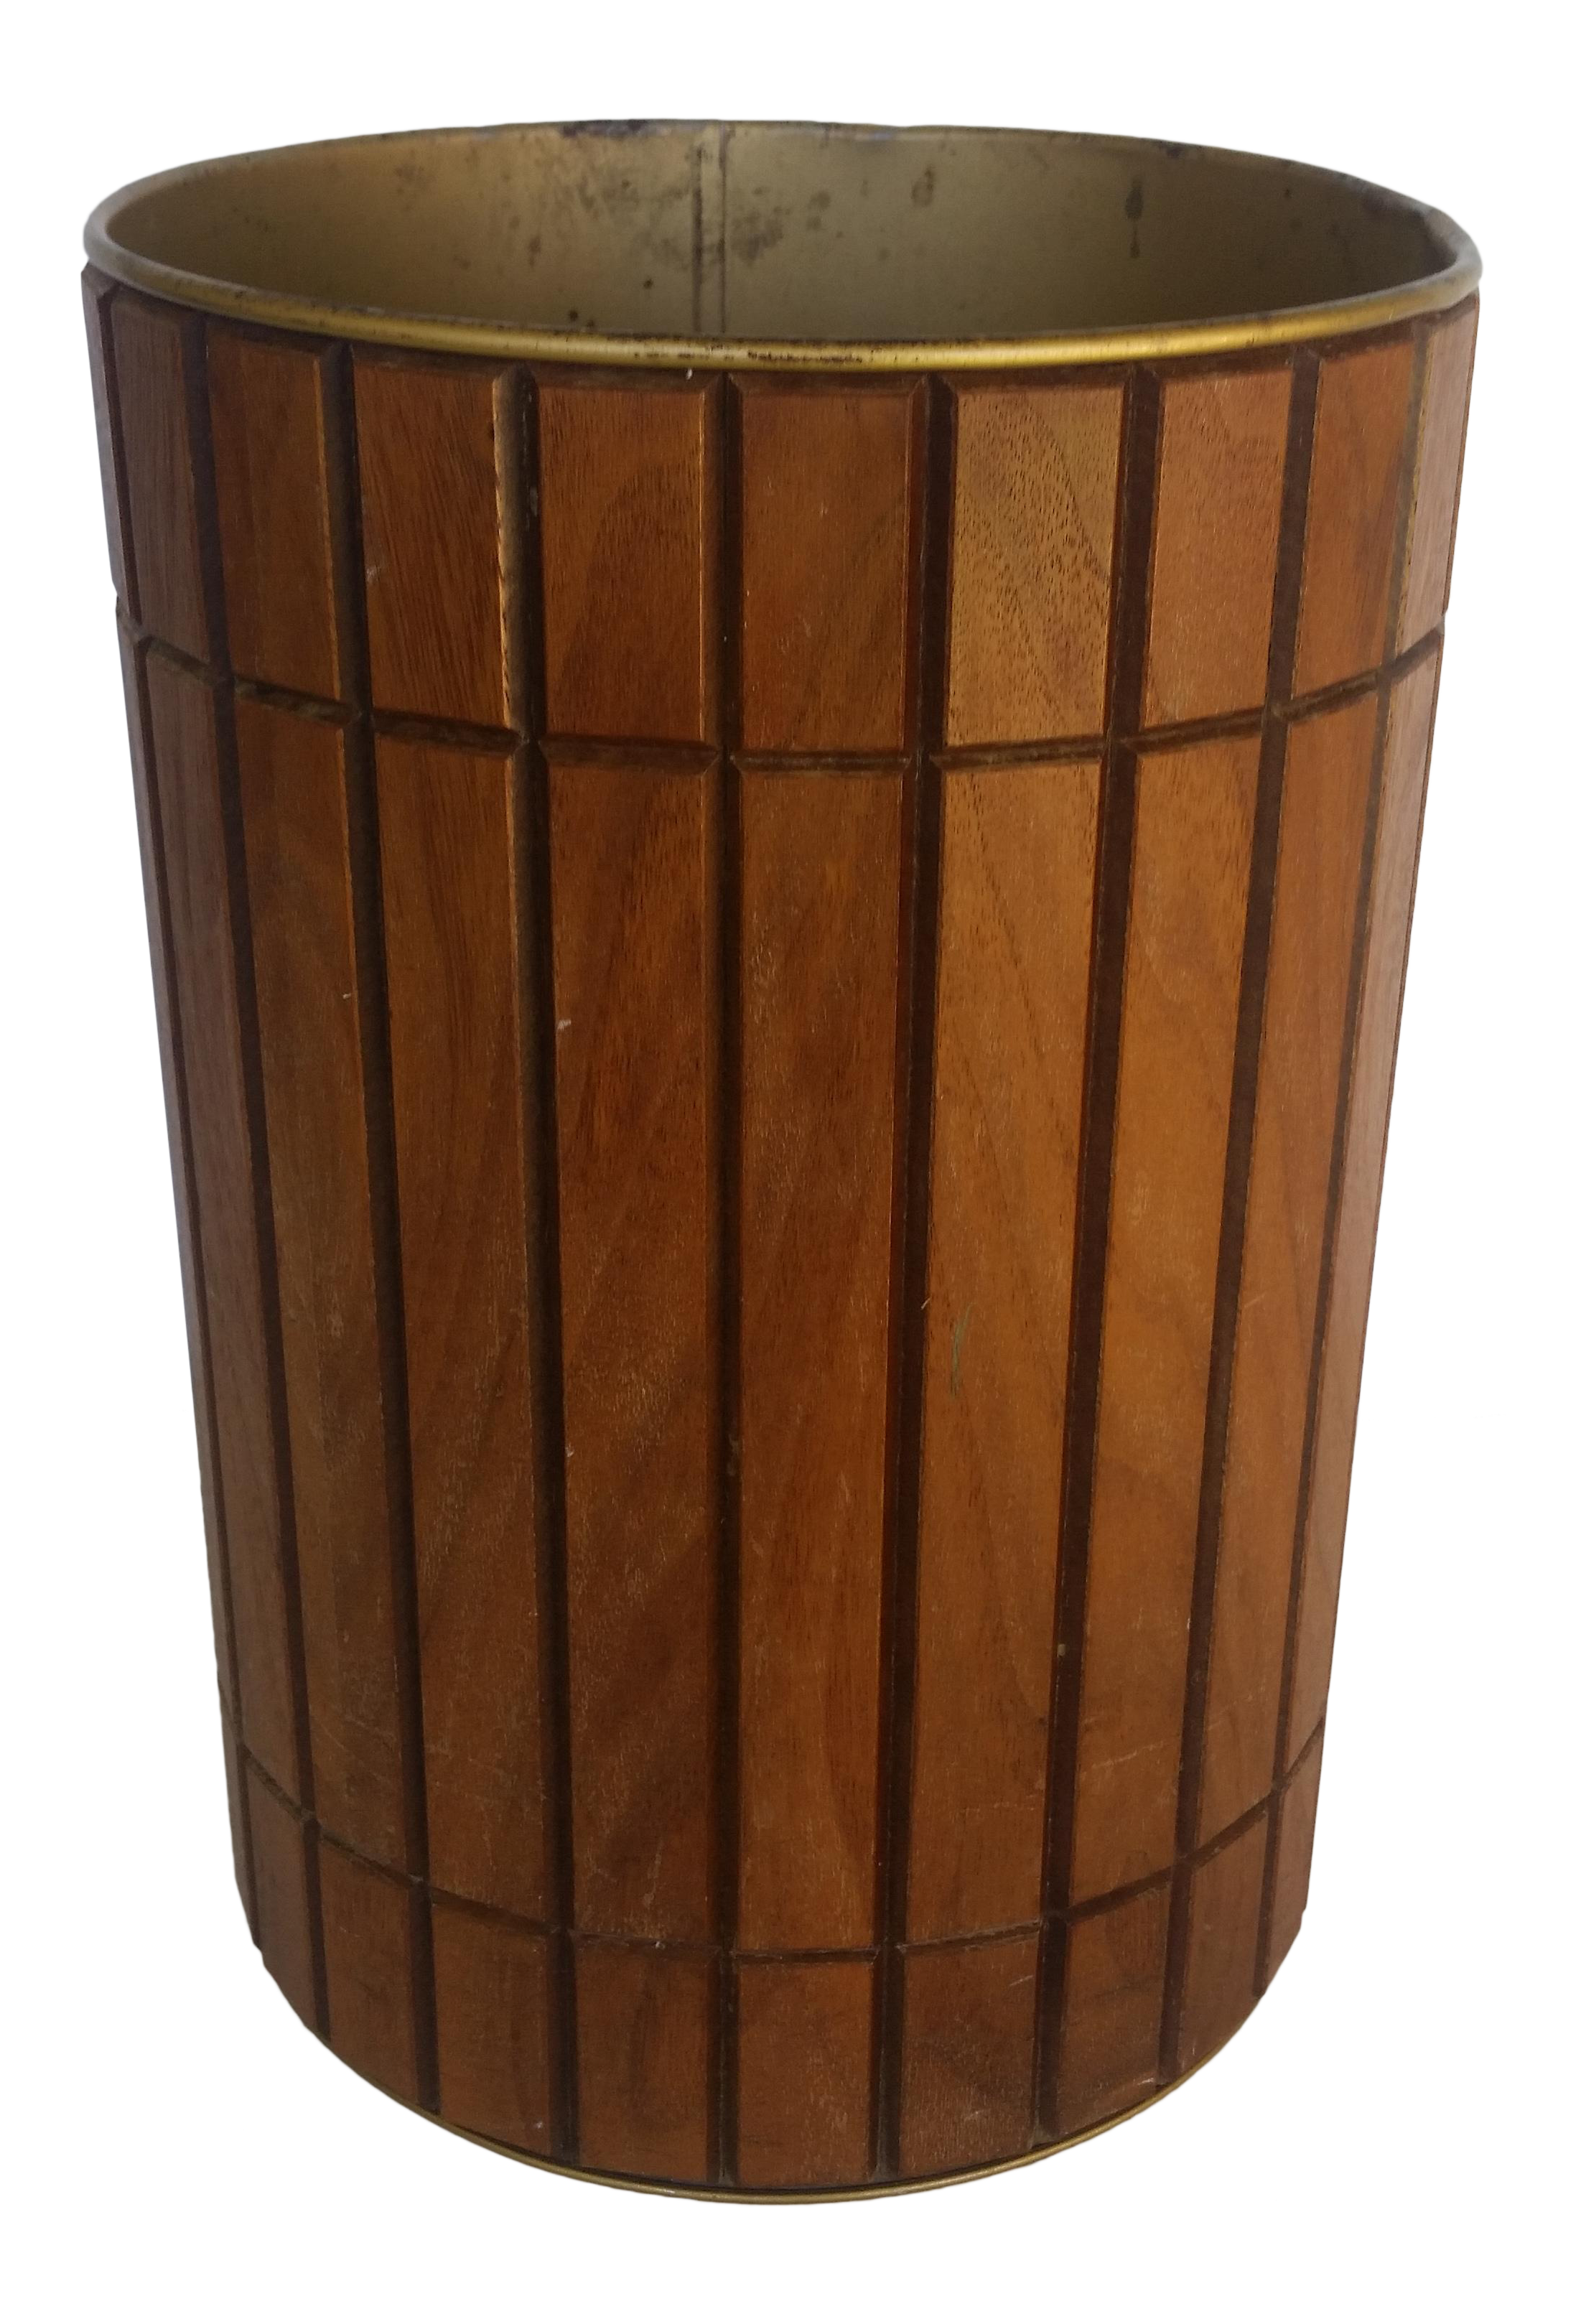 Vintage gruvwood trash can waste basket on chairish com